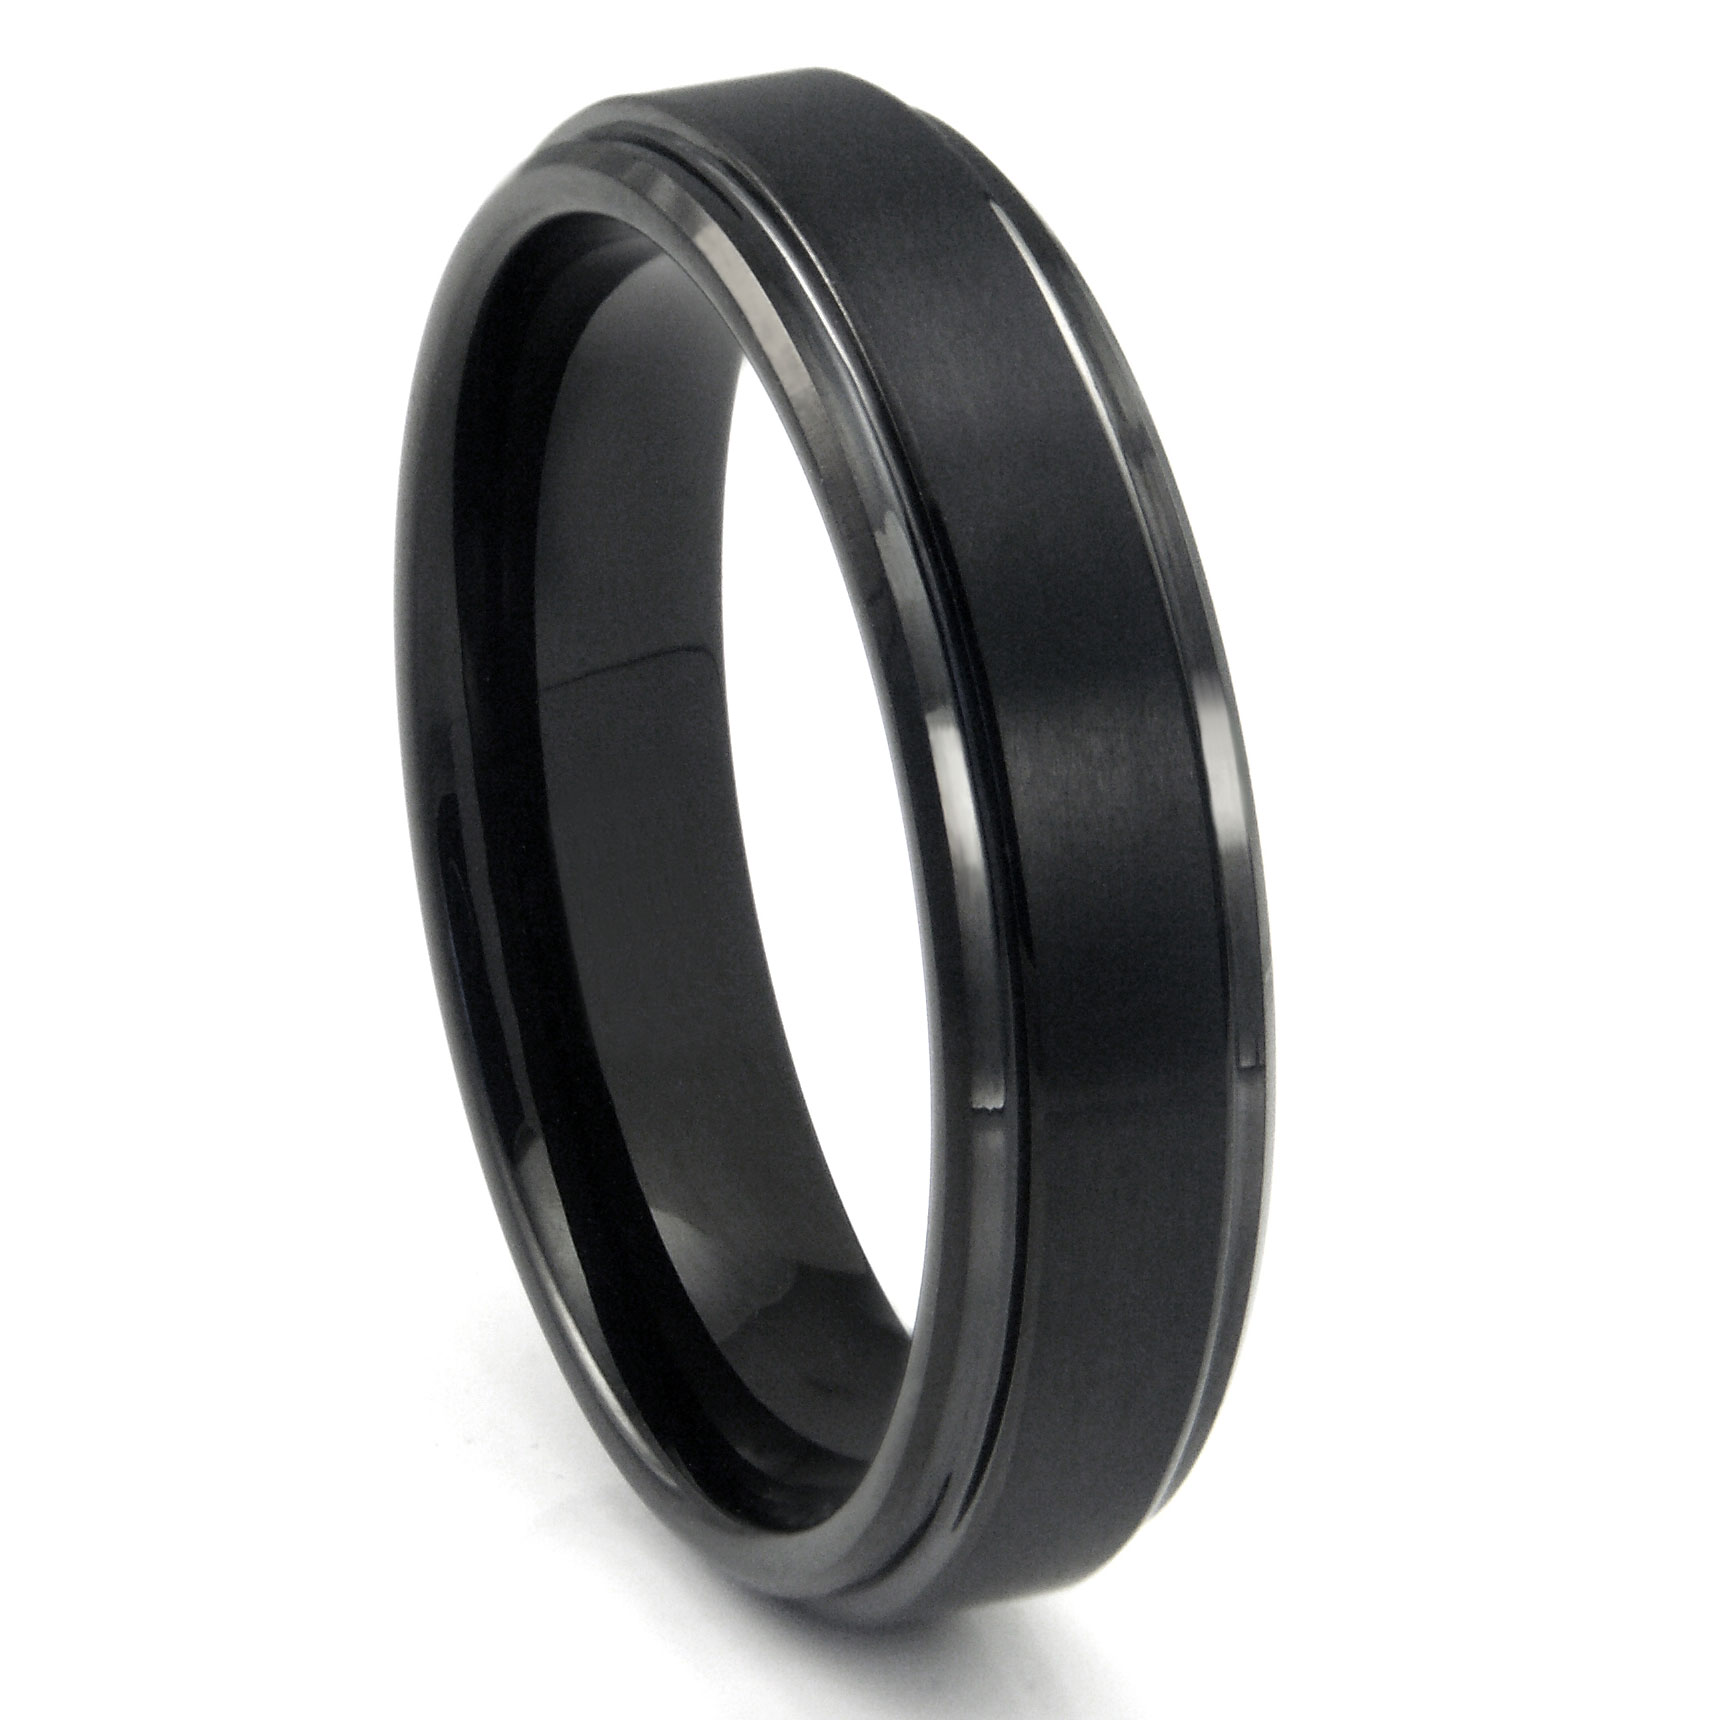 mirell rings jewelry edward black ti titanium ring trade l p concave band rain